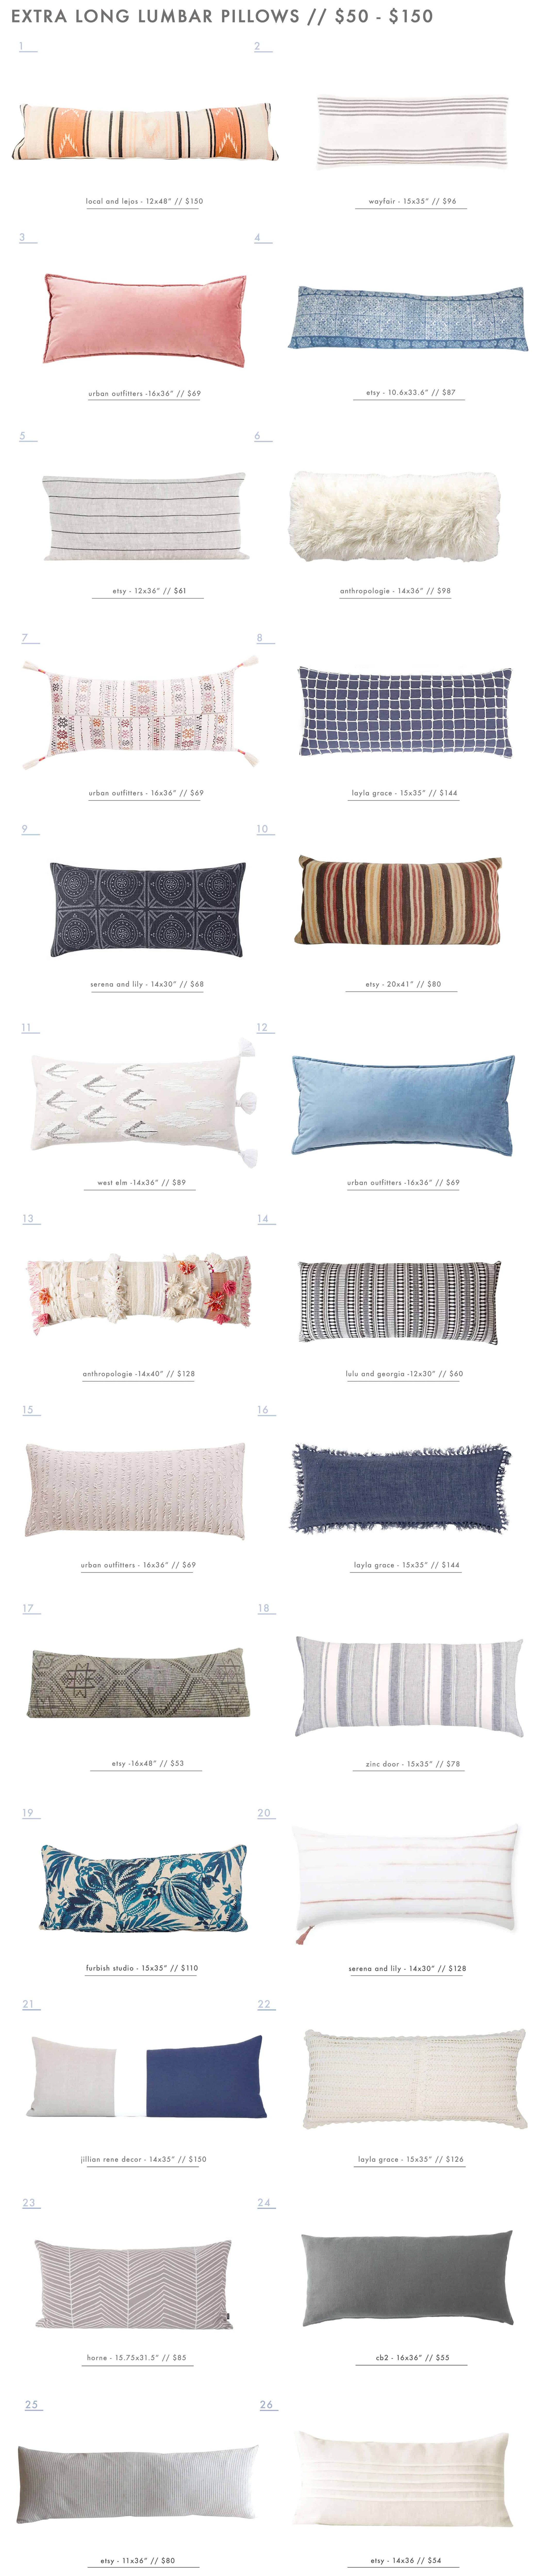 Emily-Henderson_Exra-Long_Lumbar-Pillows_Roundup_50-to-150